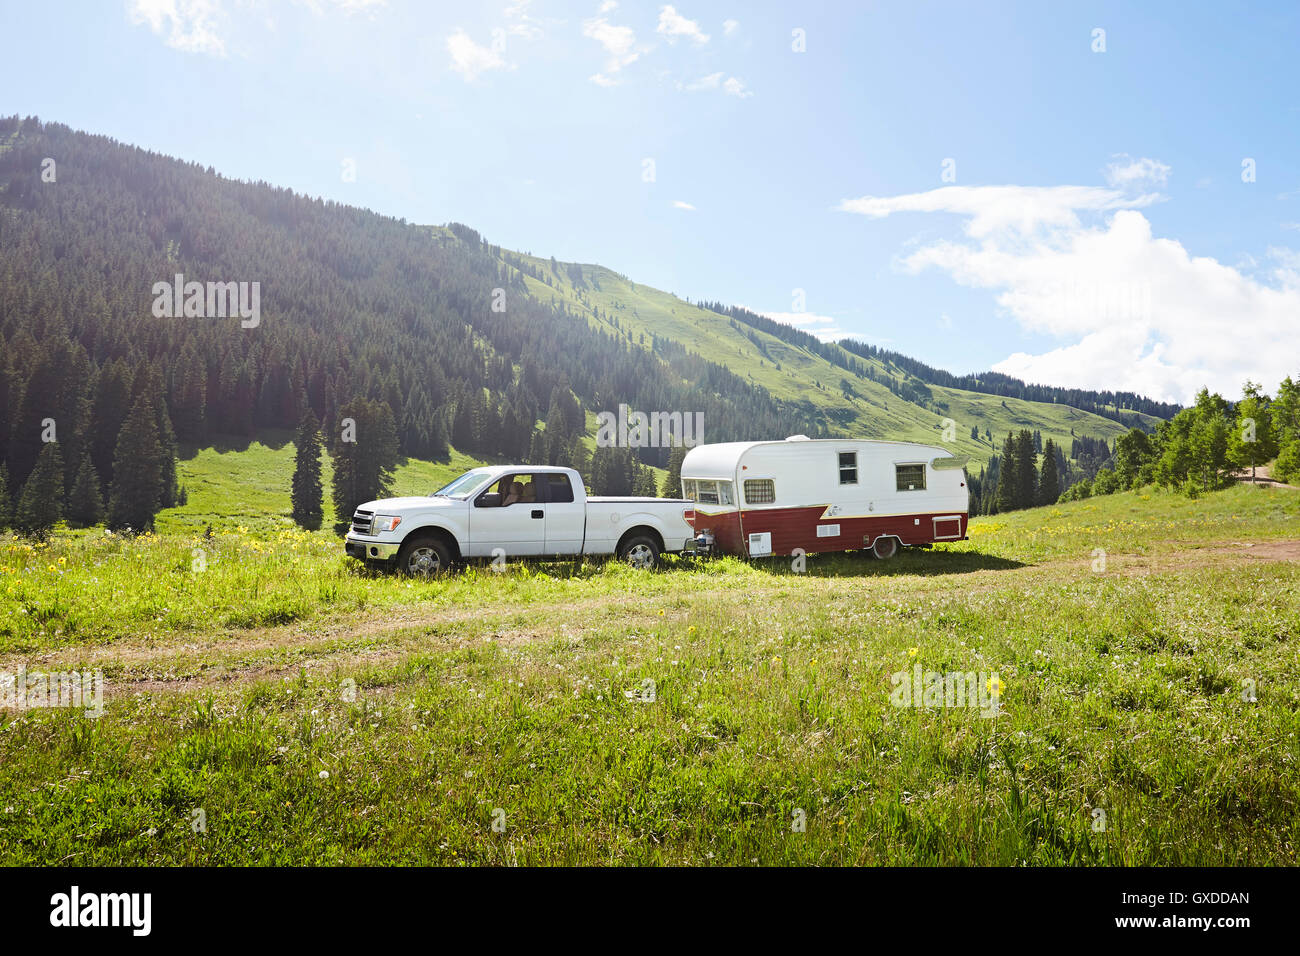 Recreational vehicle and caravan parked in landscape, Crested Butte, Colorado, USA - Stock Image